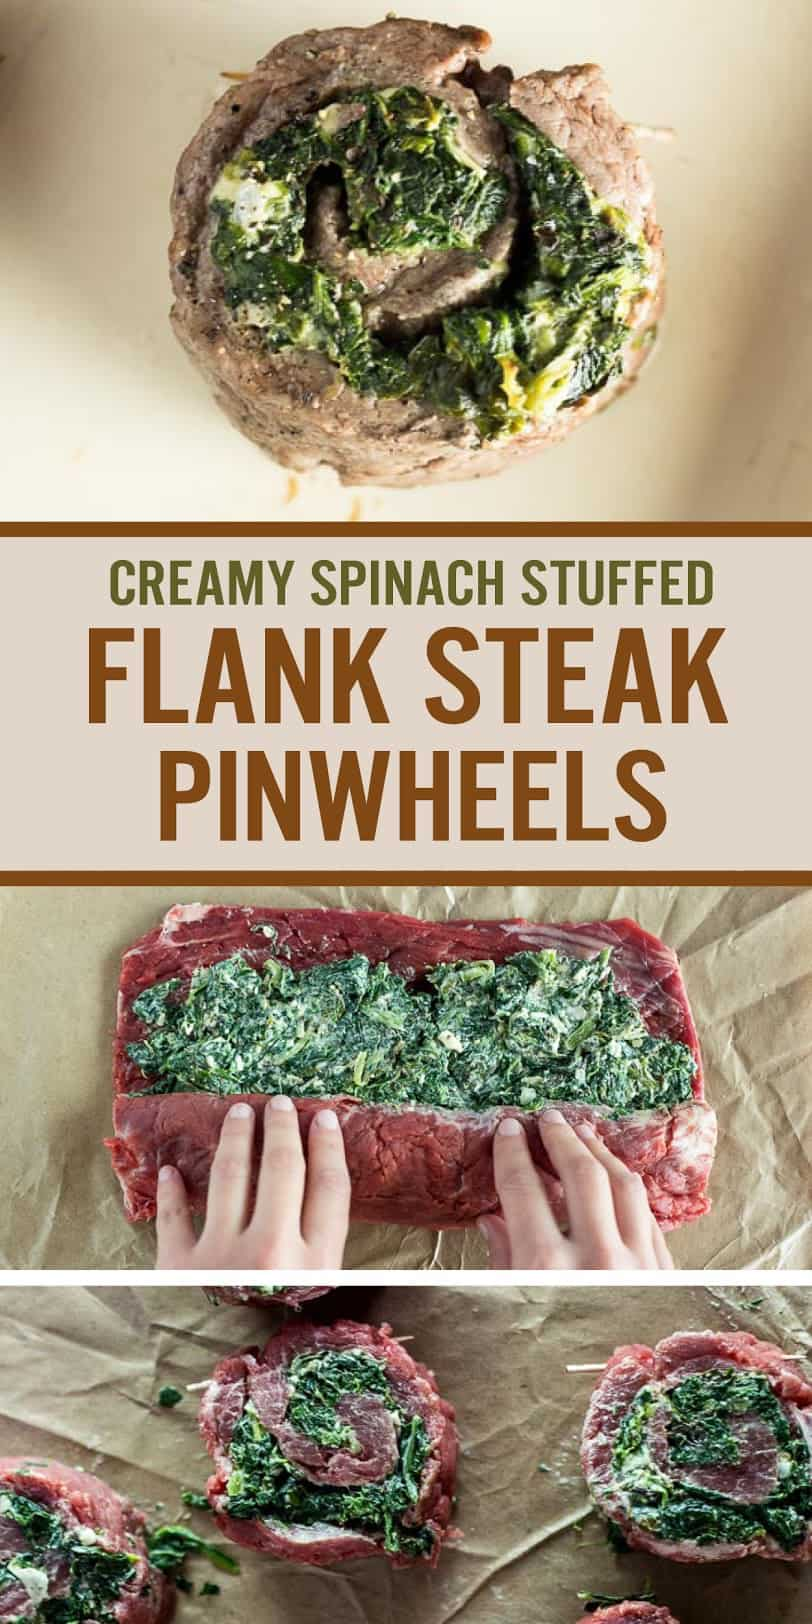 Creamy Spinach Stuffed Flank Steak Pinwheels make a unique and fancy appetizer that\'s great for the holidays. Made with flank steak, spinach and Parmesan dip. Plus tips to make rolled pinwheels with optimal flavor and texture. #steakpinwheels #flanksteak #holidayappetizer